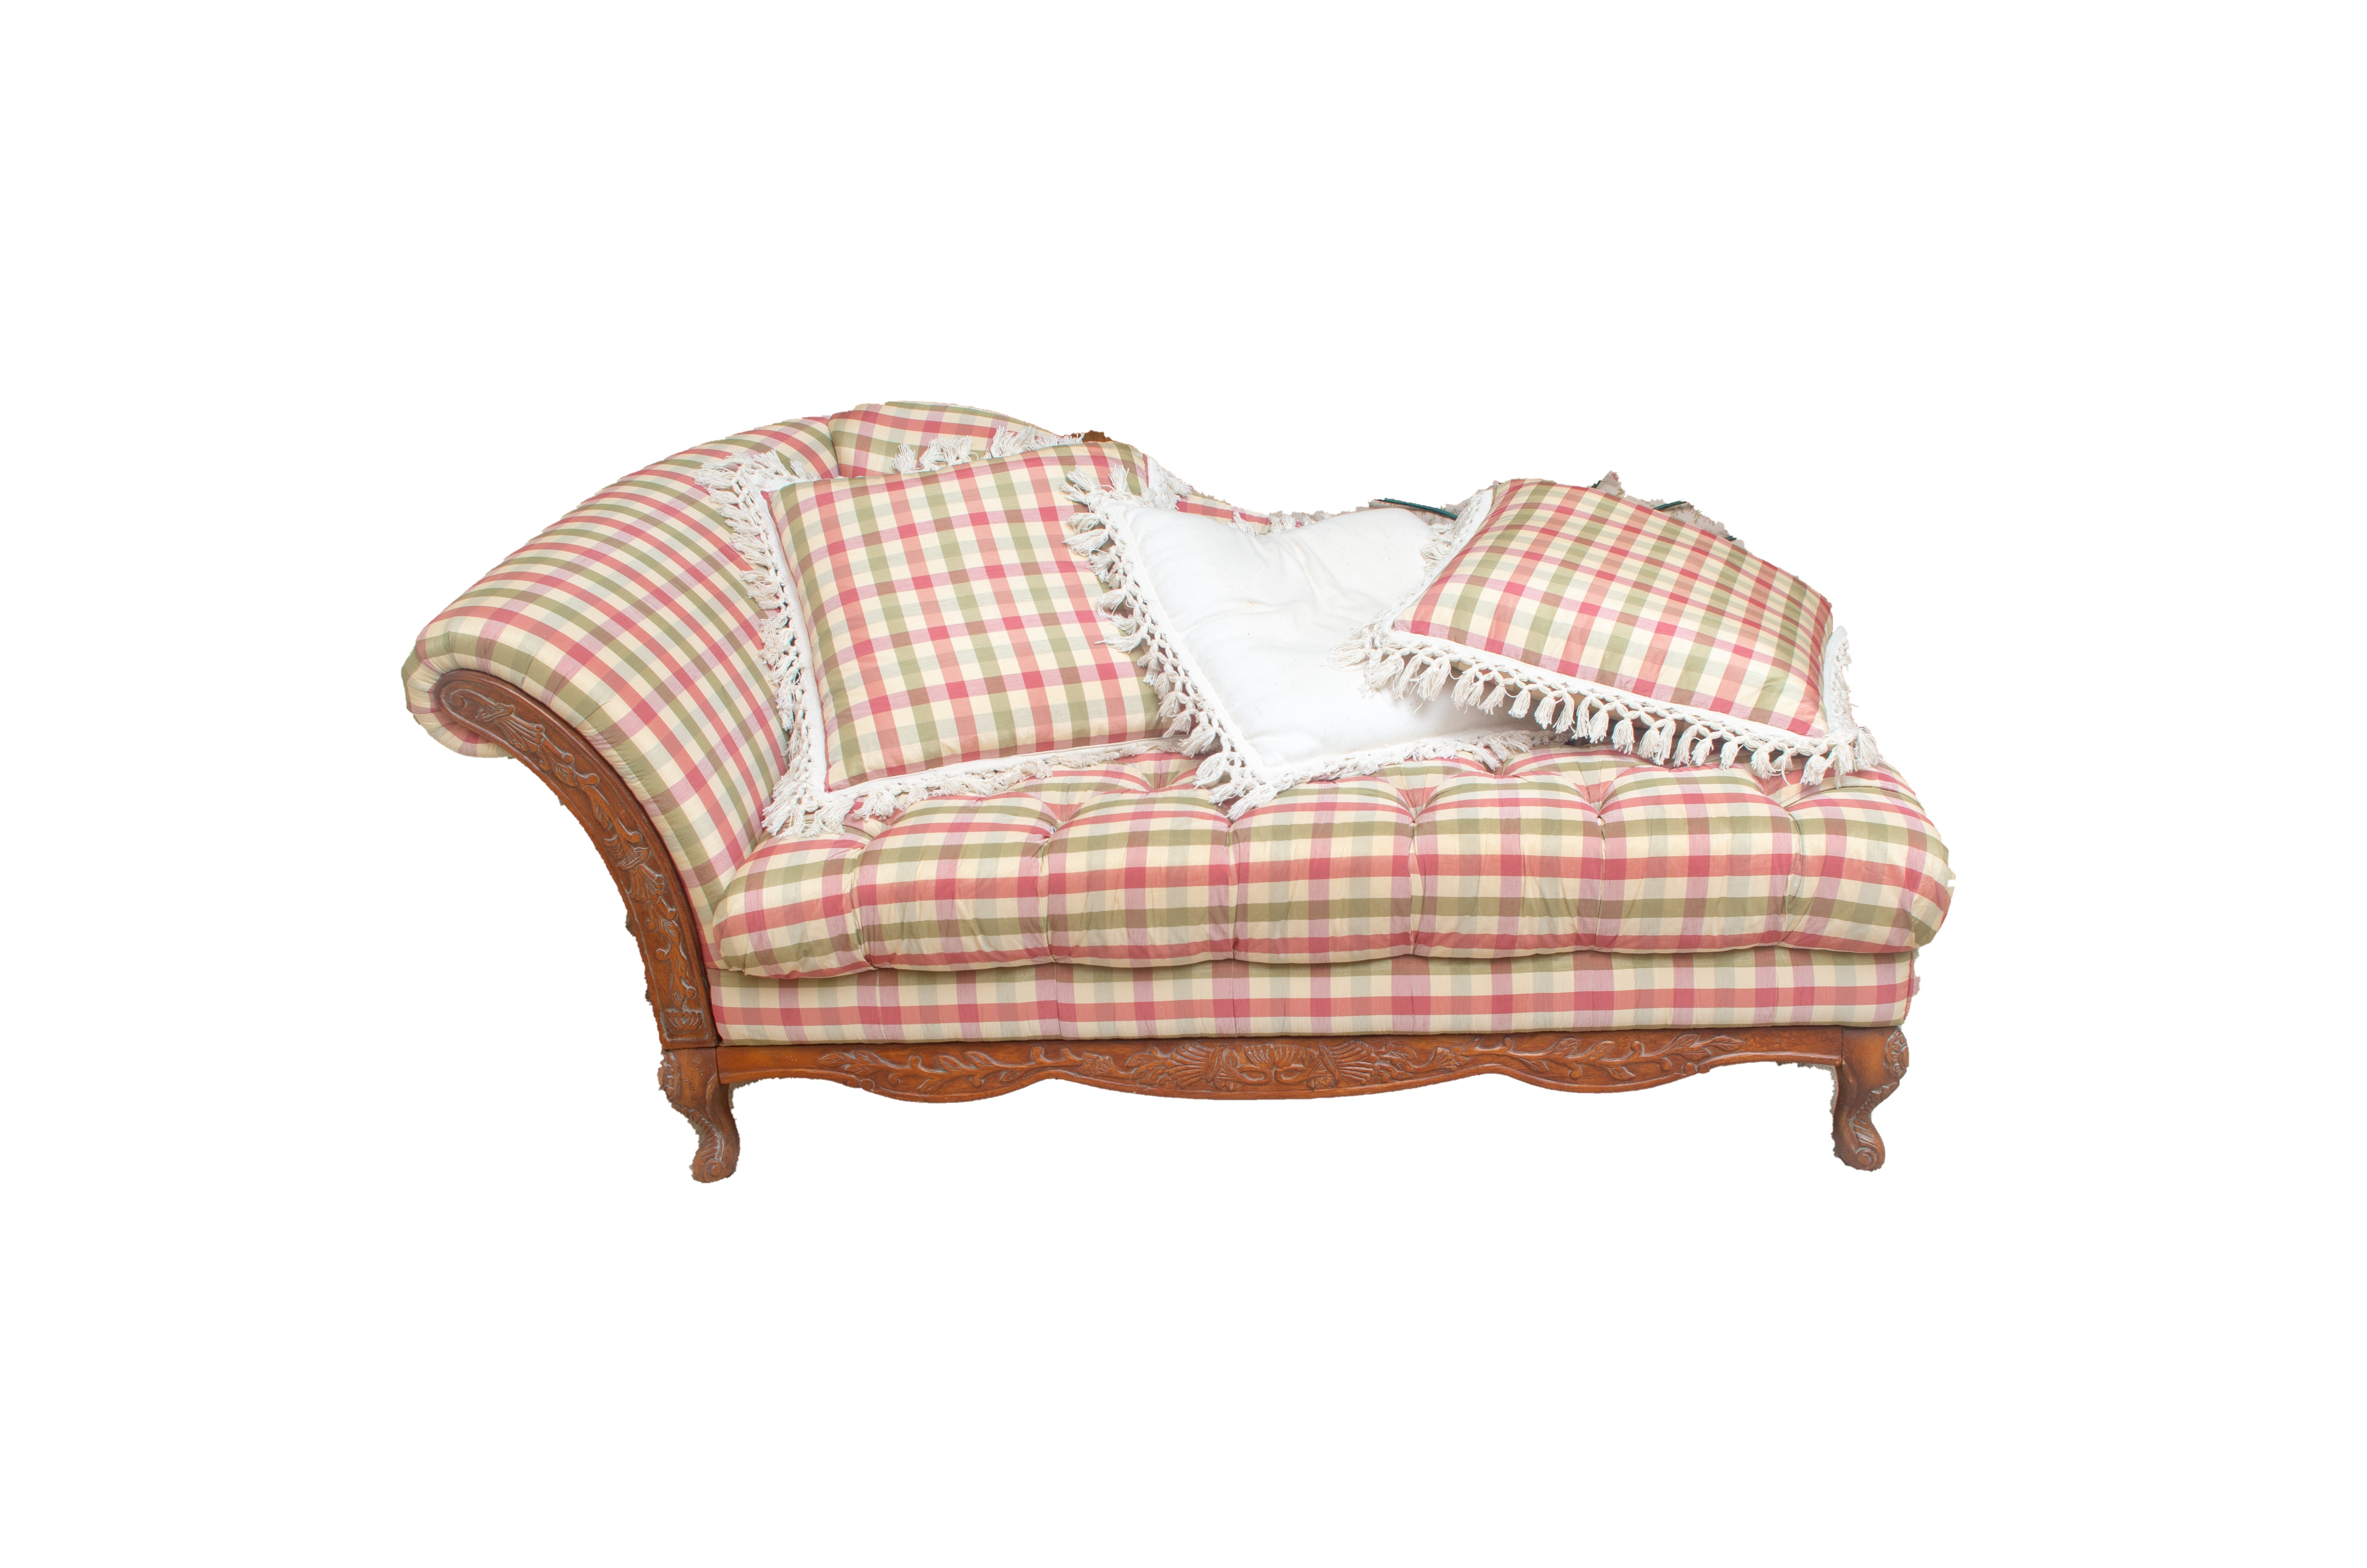 Gingham Chaise Lounge